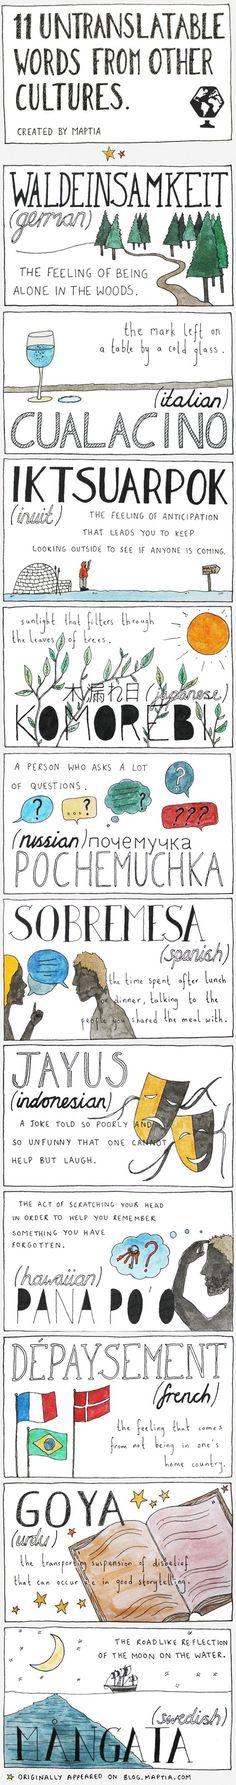 The Russian word is a combination of pochemu, which means why, and the word ending chka, whick is something like an endearment. Also could the French word maybe be translated to homesickness?